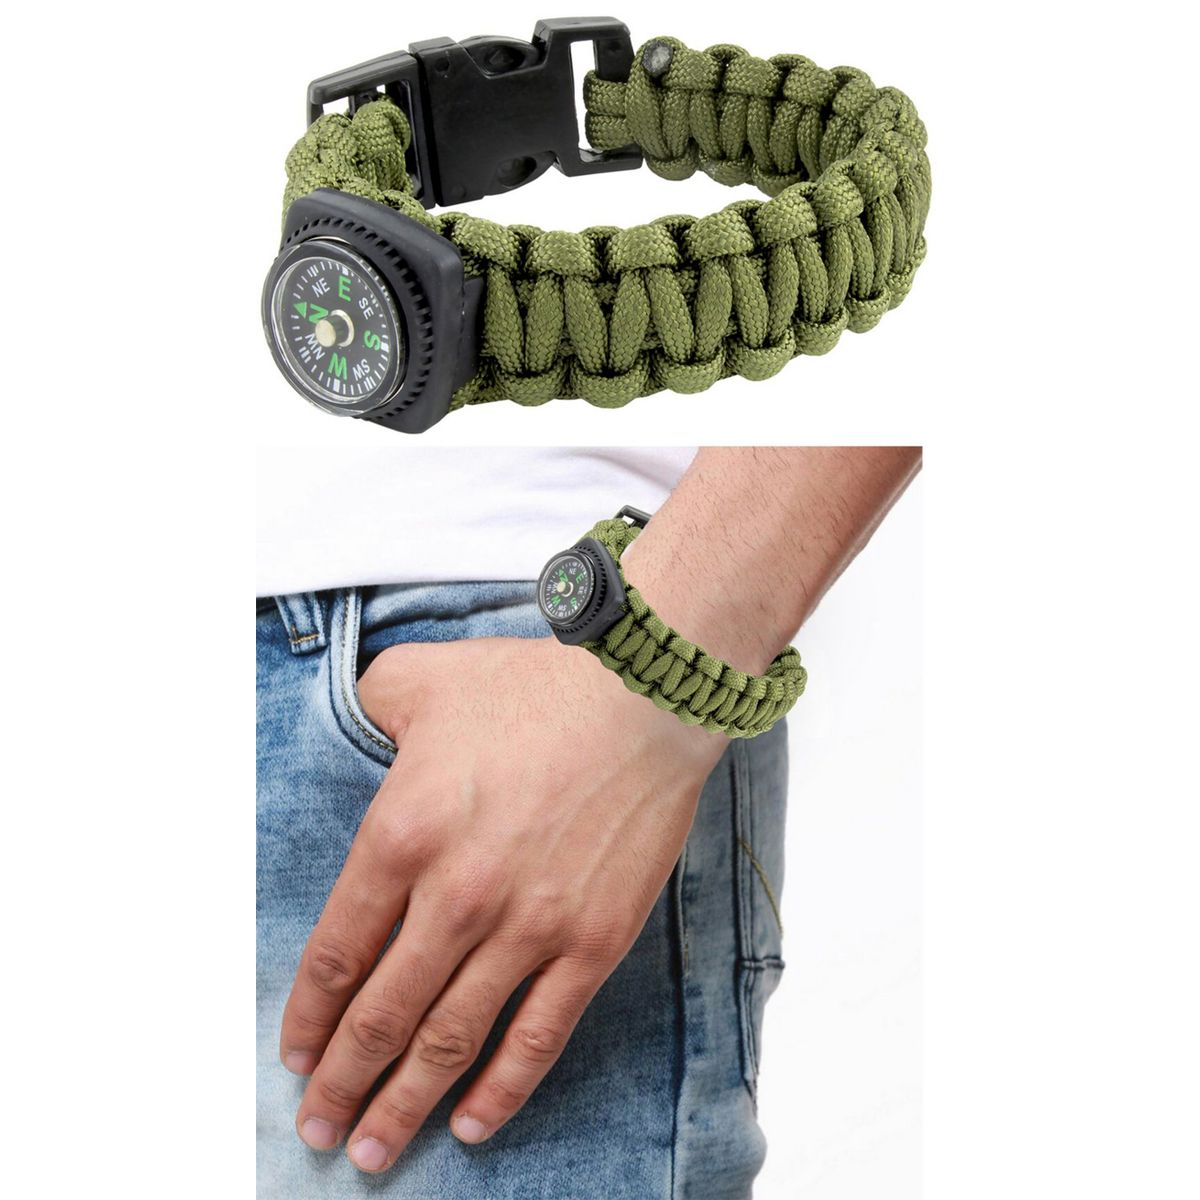 The Jewelbox Black Compass Dark Green Outdoor Camping Adventure Compass Wrist Band Bracelet For Boys Men